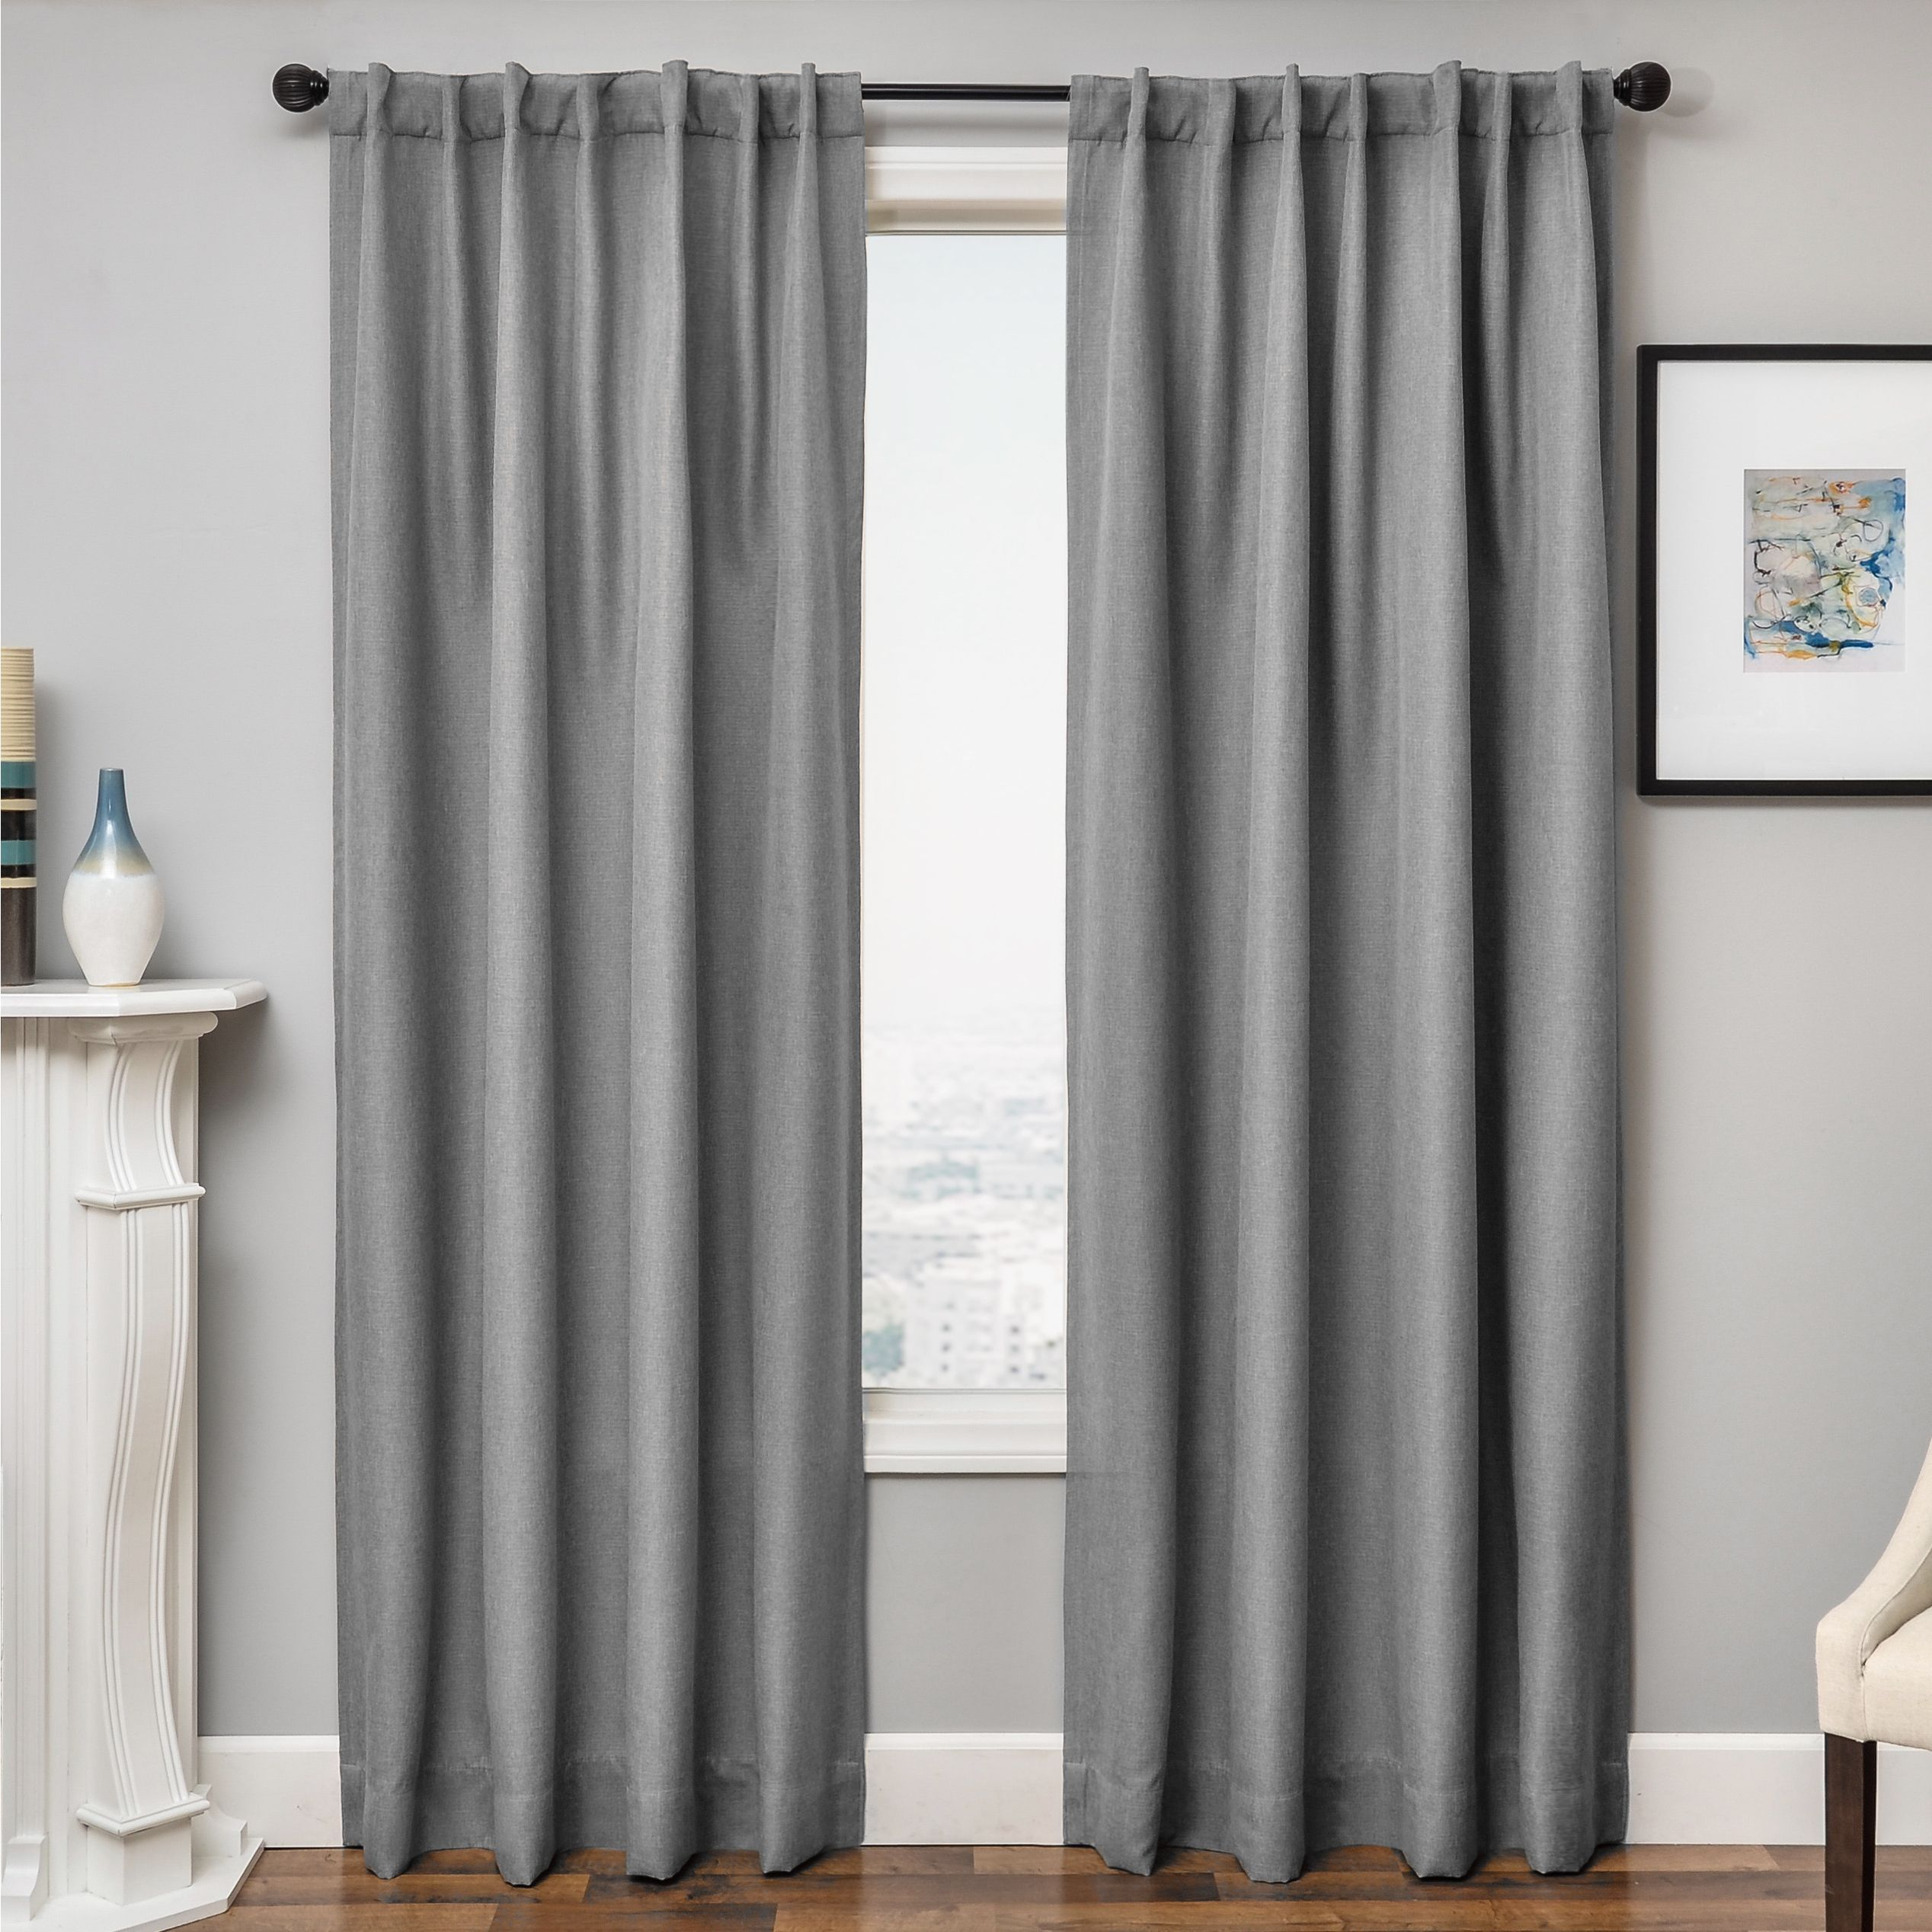 Softline Solara Faux Linen Blackout Curtain Panel (54x84 Inside Faux Linen Blackout Curtains (View 13 of 20)